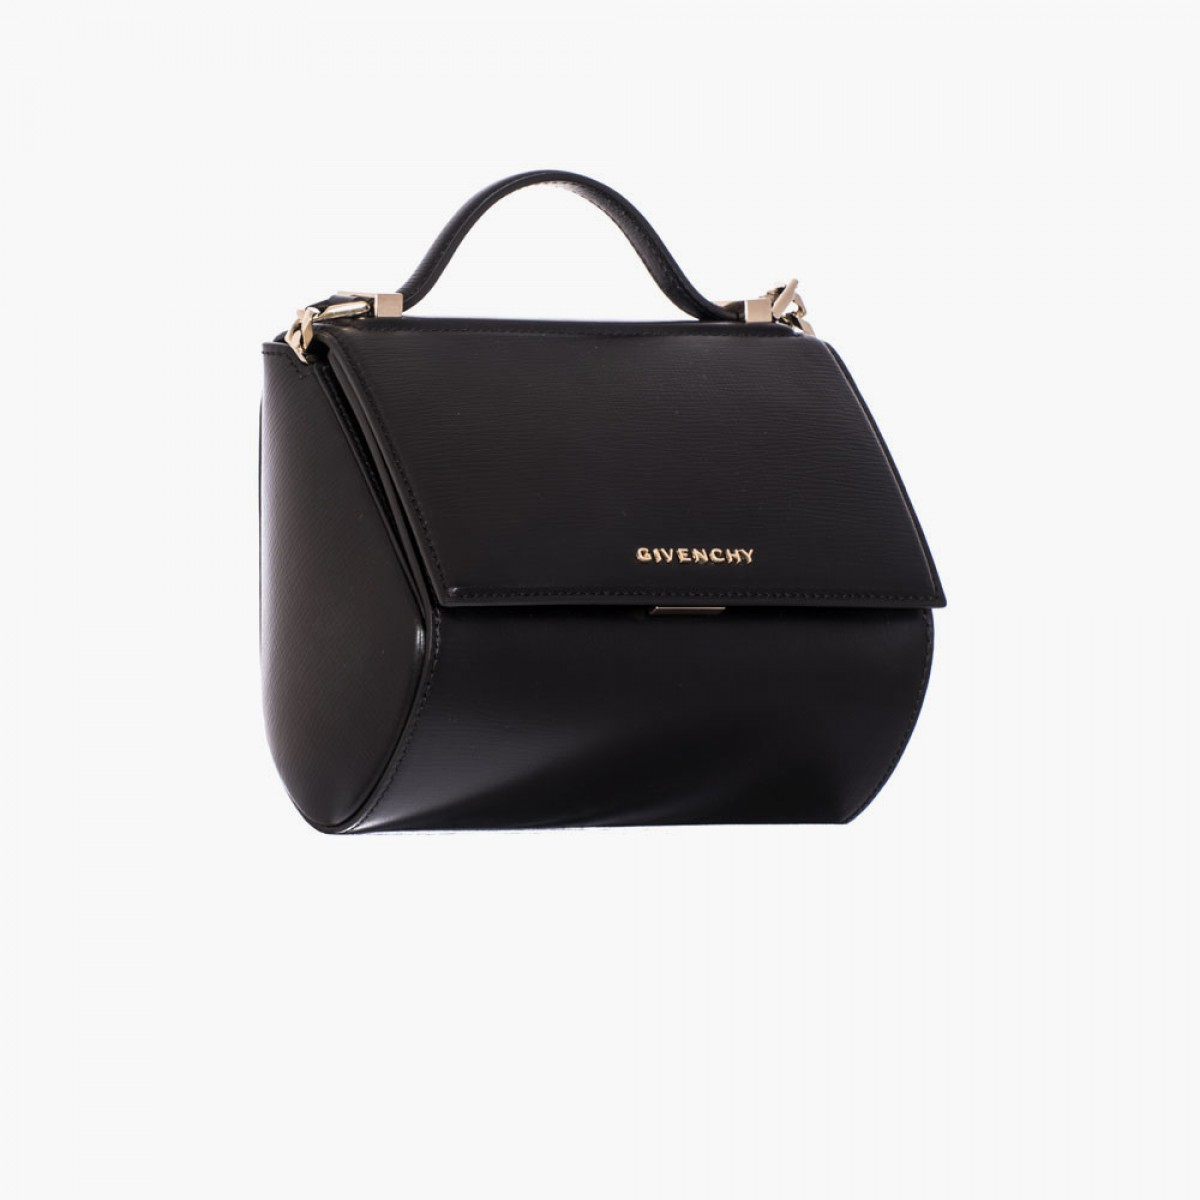 givenchy black leather quot pandora box chain quot mini bag in